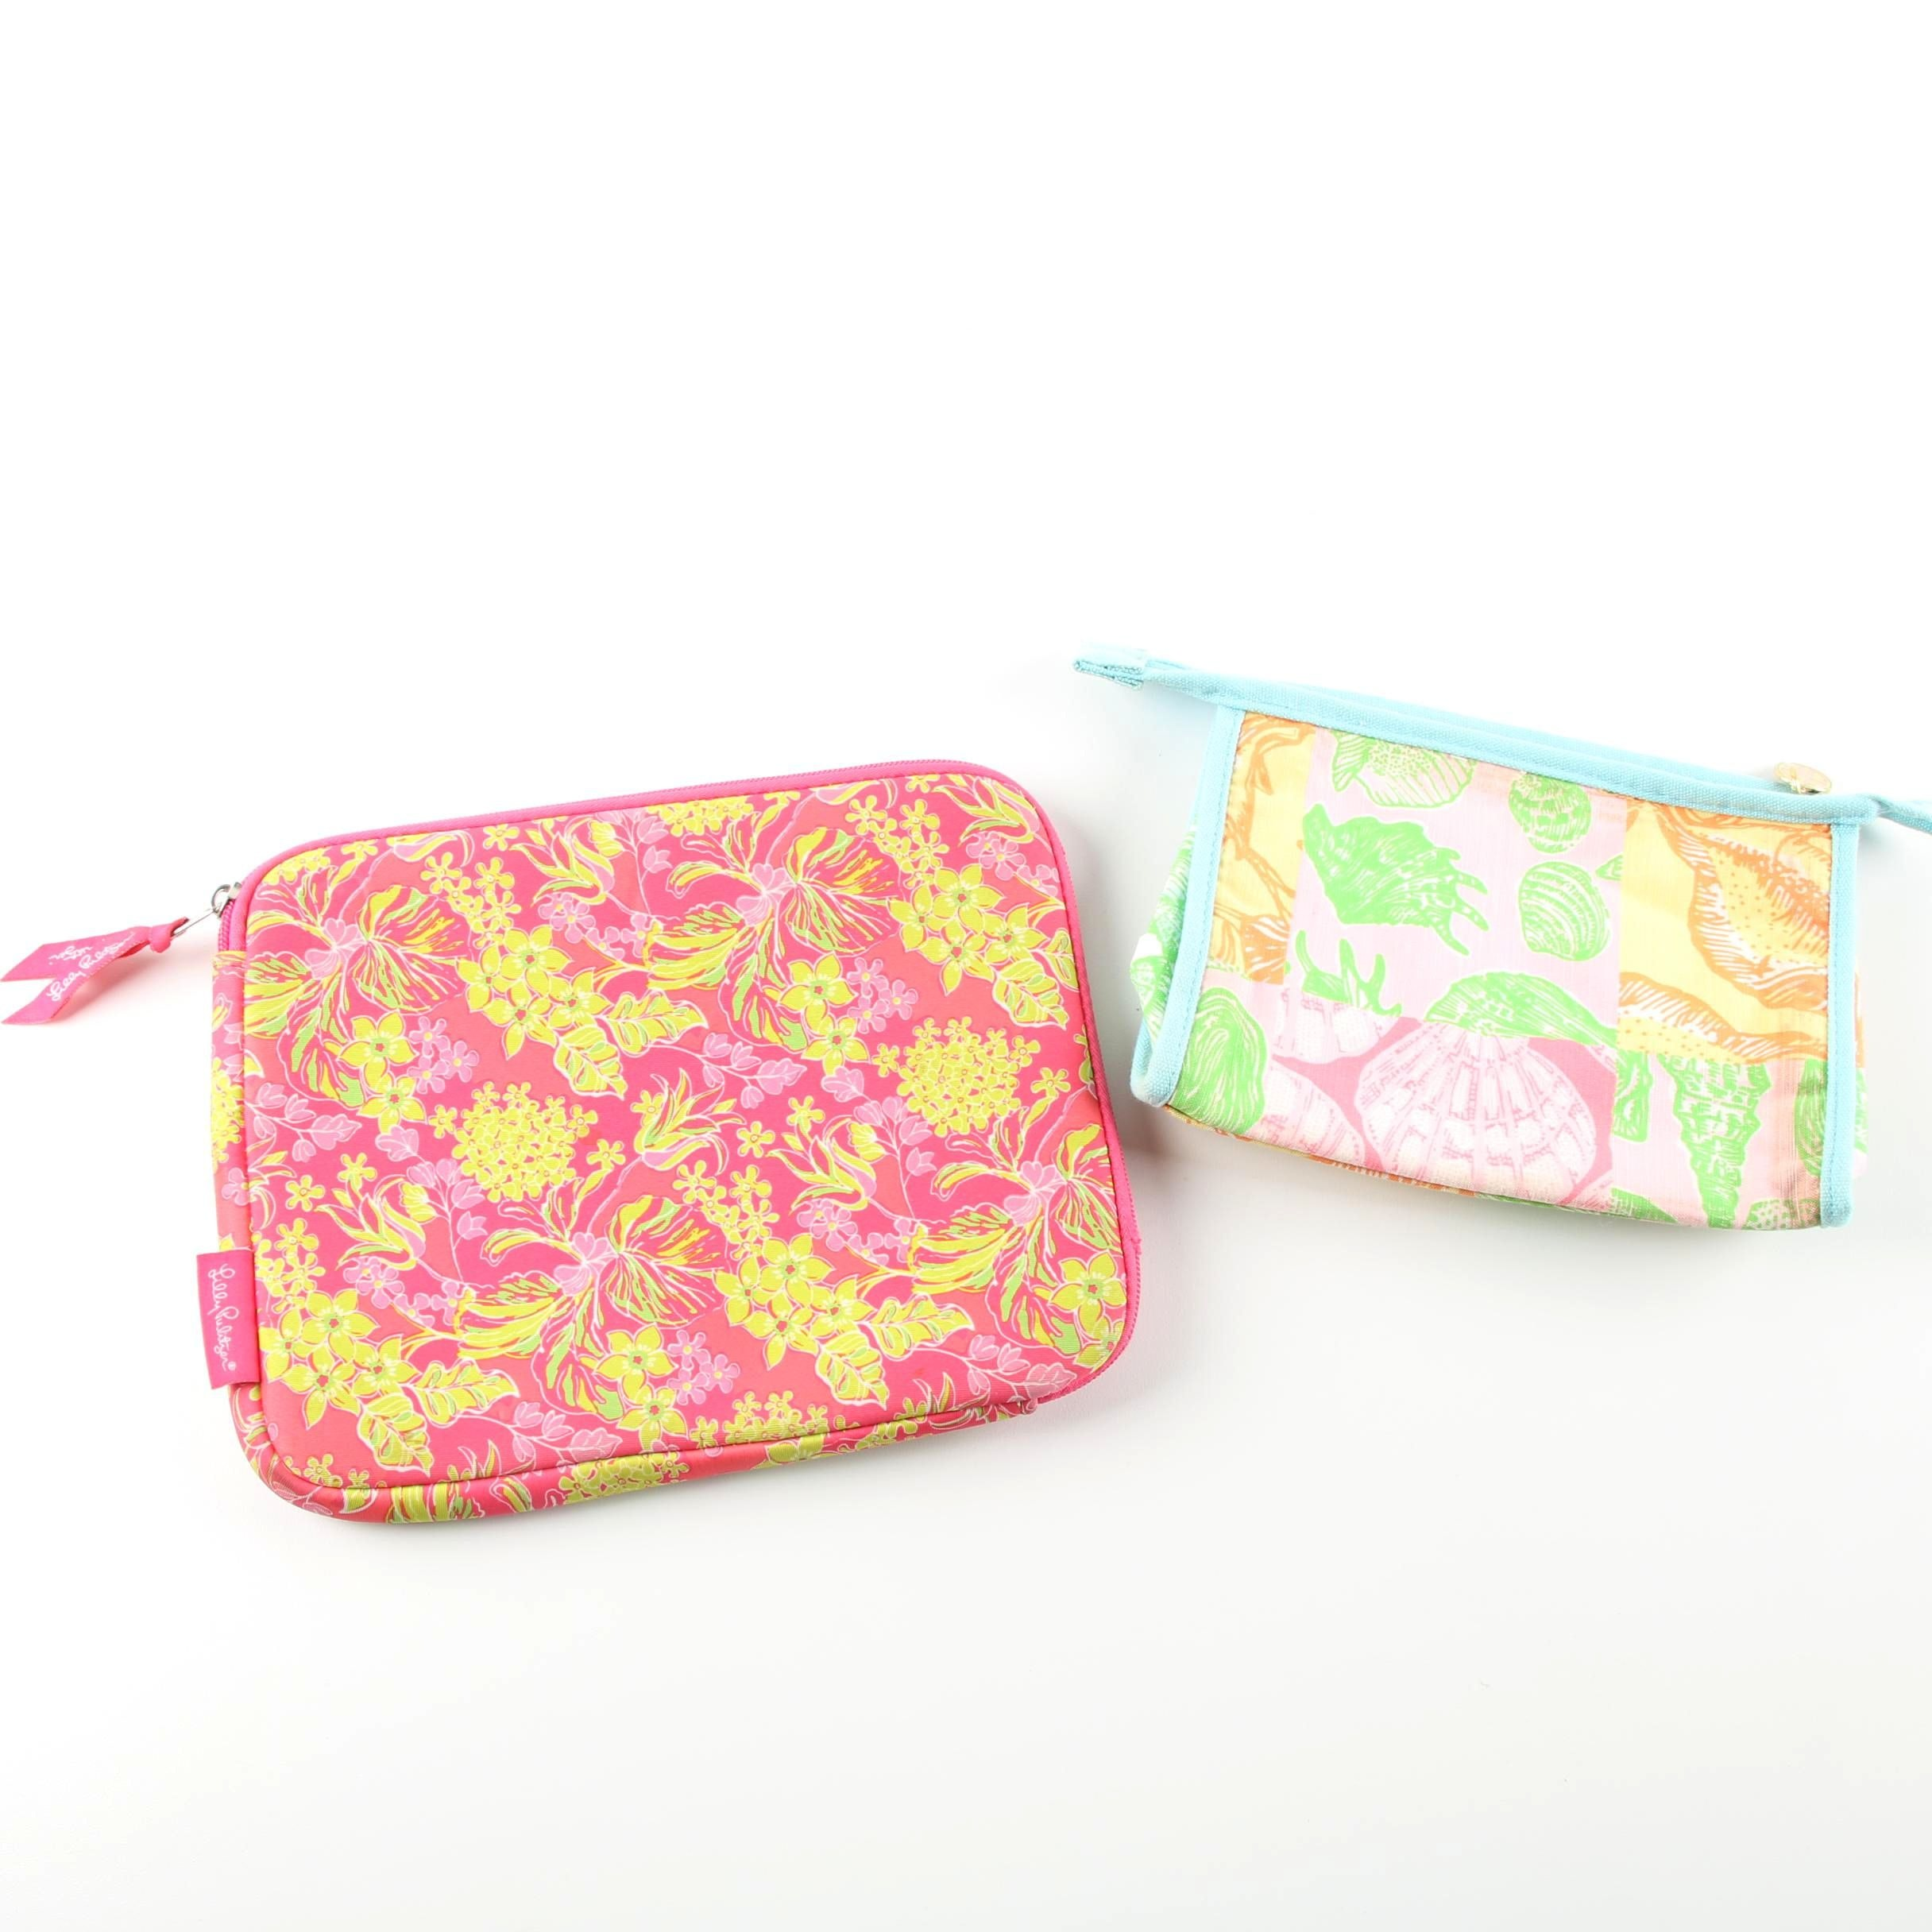 Lilly Pulitzer iPad Case and Cosmetic Bag